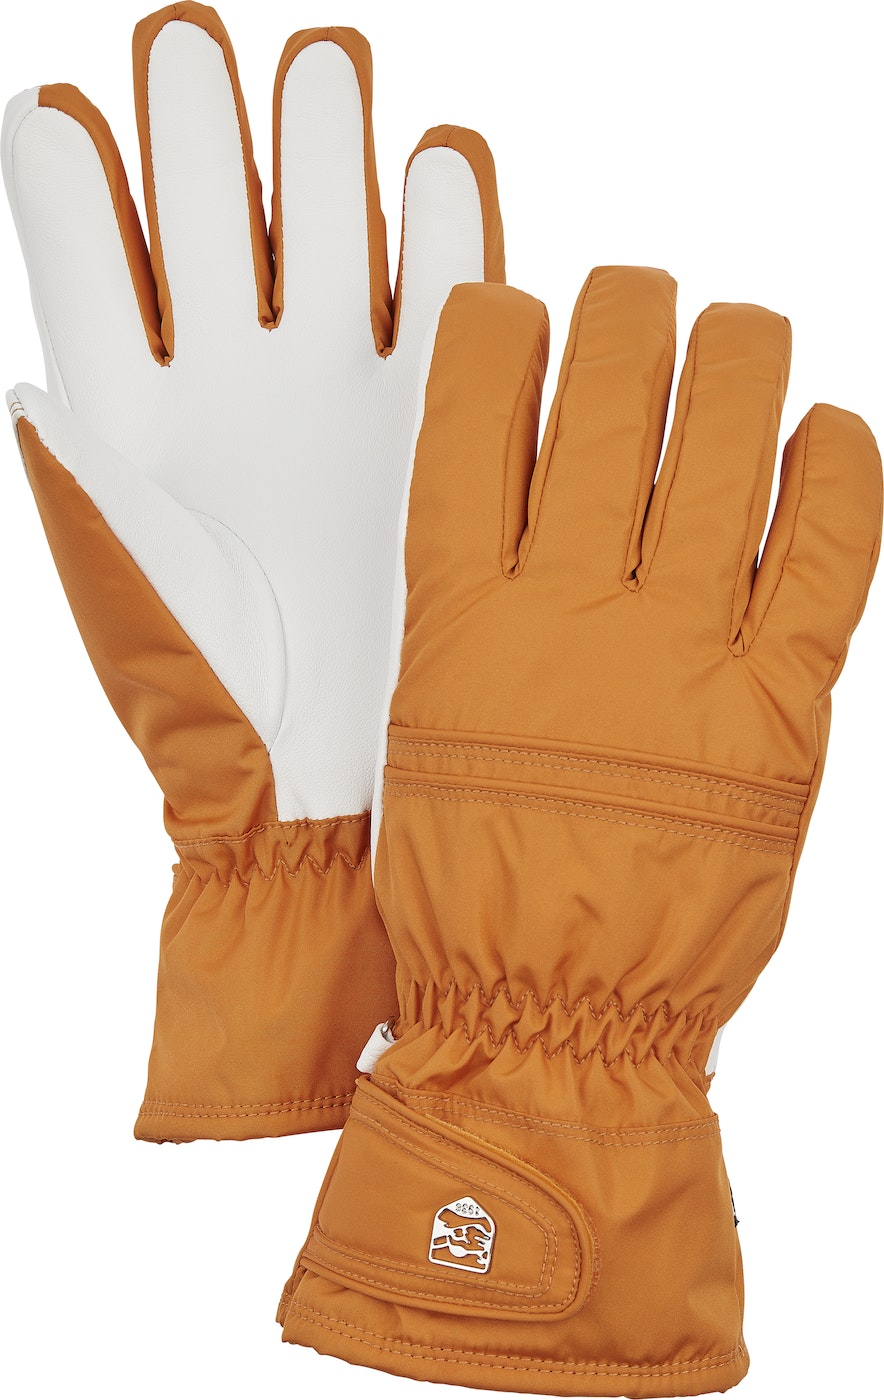 Produktbild för 32210 Primaloft Leather Female